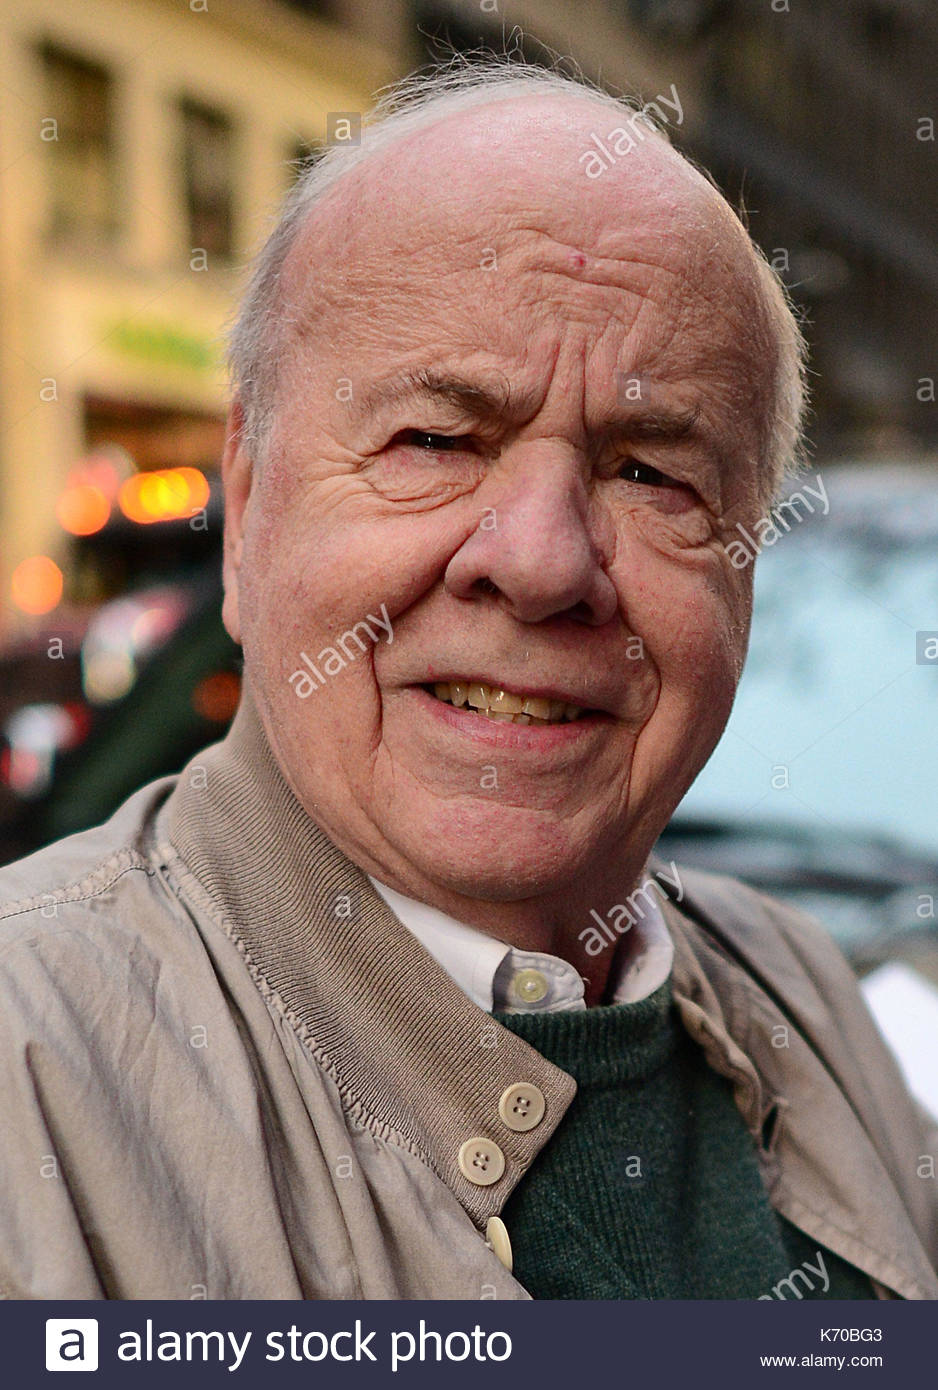 Tim Conway Conway Stock Photos & Tim Conway Conway Stock ...